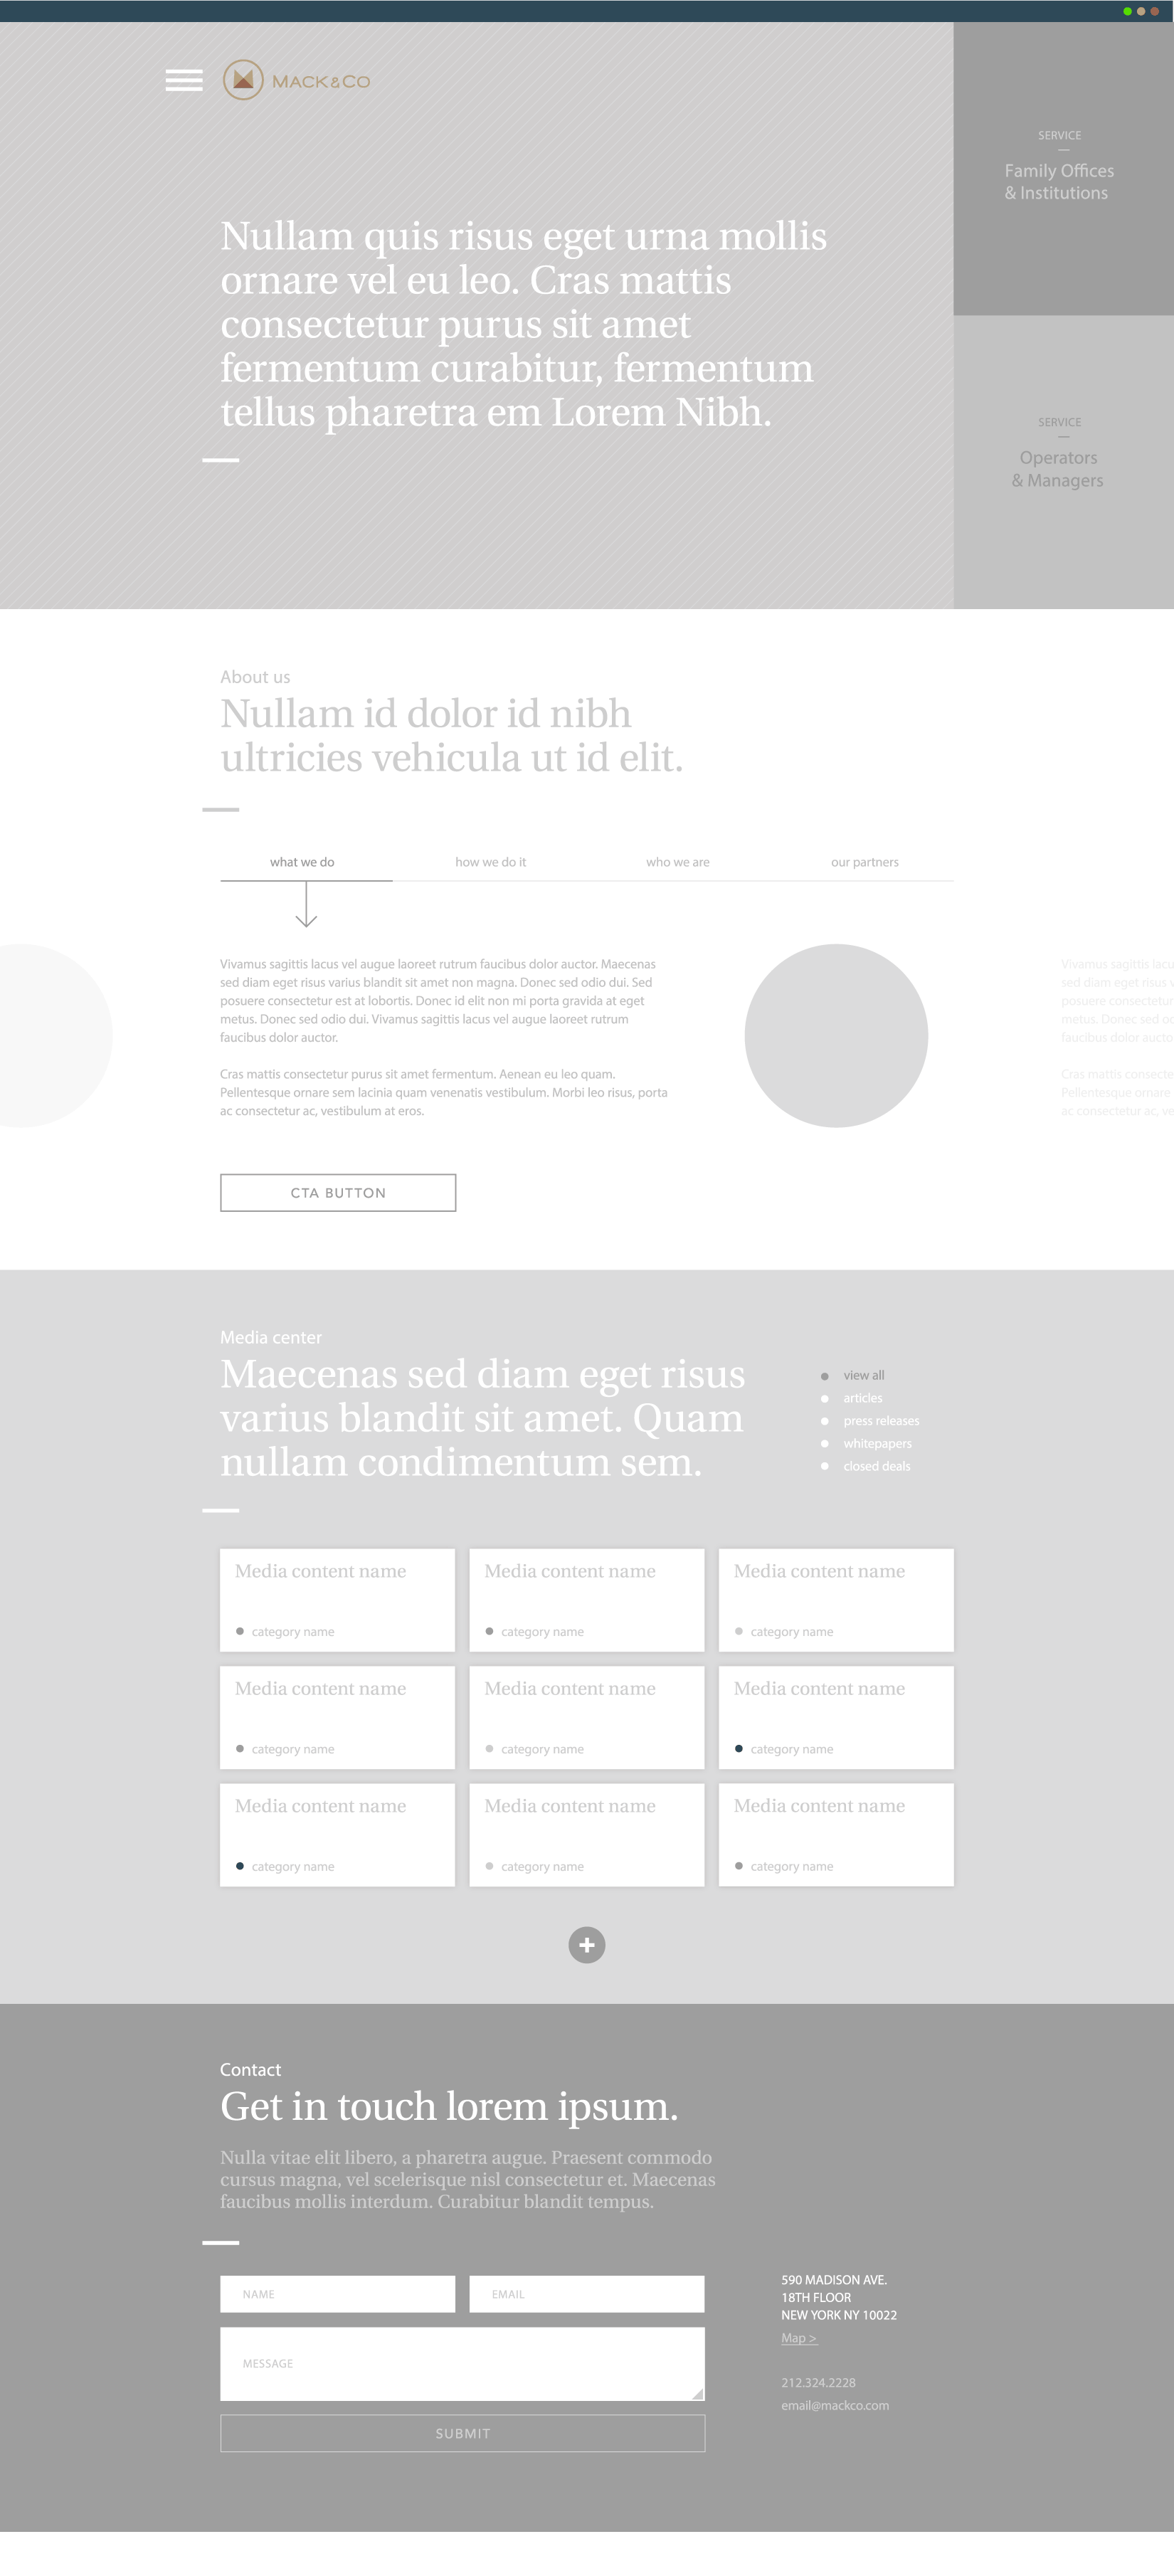 mack & co wireframe